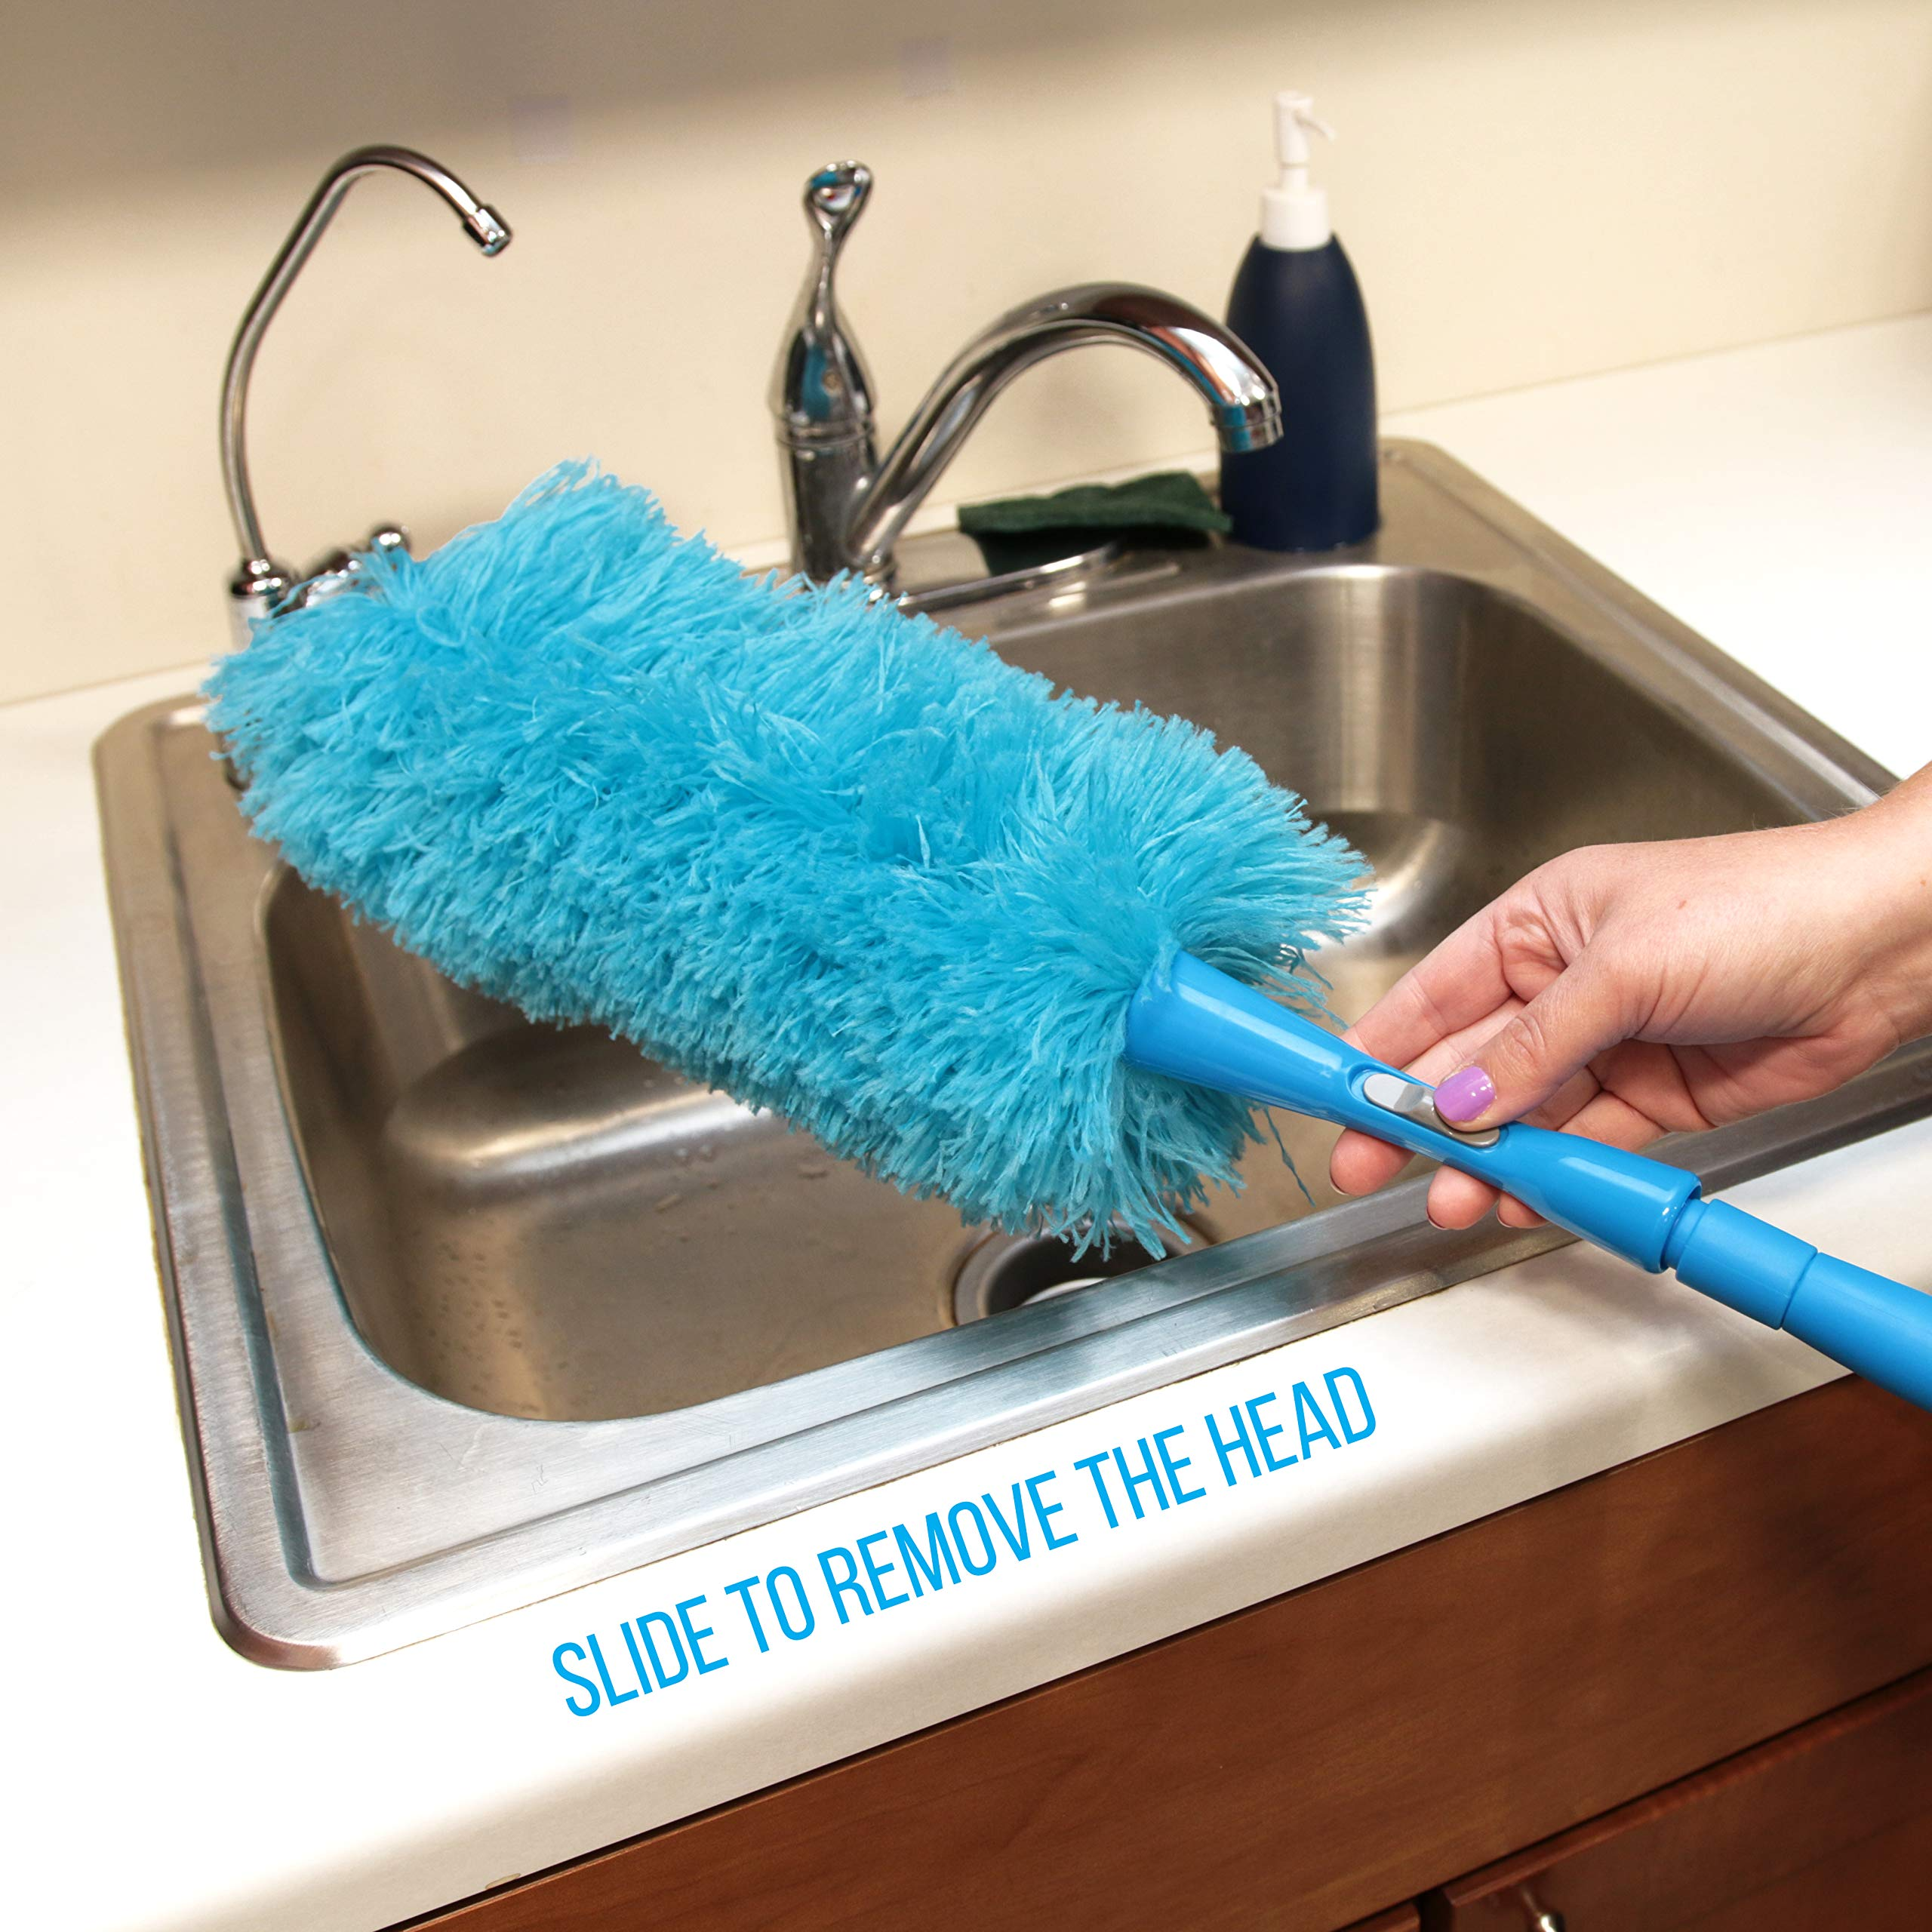 Hank HouseHold TriboDuster with Bonus Blinds Cleaner - Microfiber Duster for Cleaning with Extendable Telescoping Pole Up to 5ft6''! Ceiling Fan Dusters, Cobweb/Spider Web Brush and Blind Duster by Hank HouseHold (Image #4)